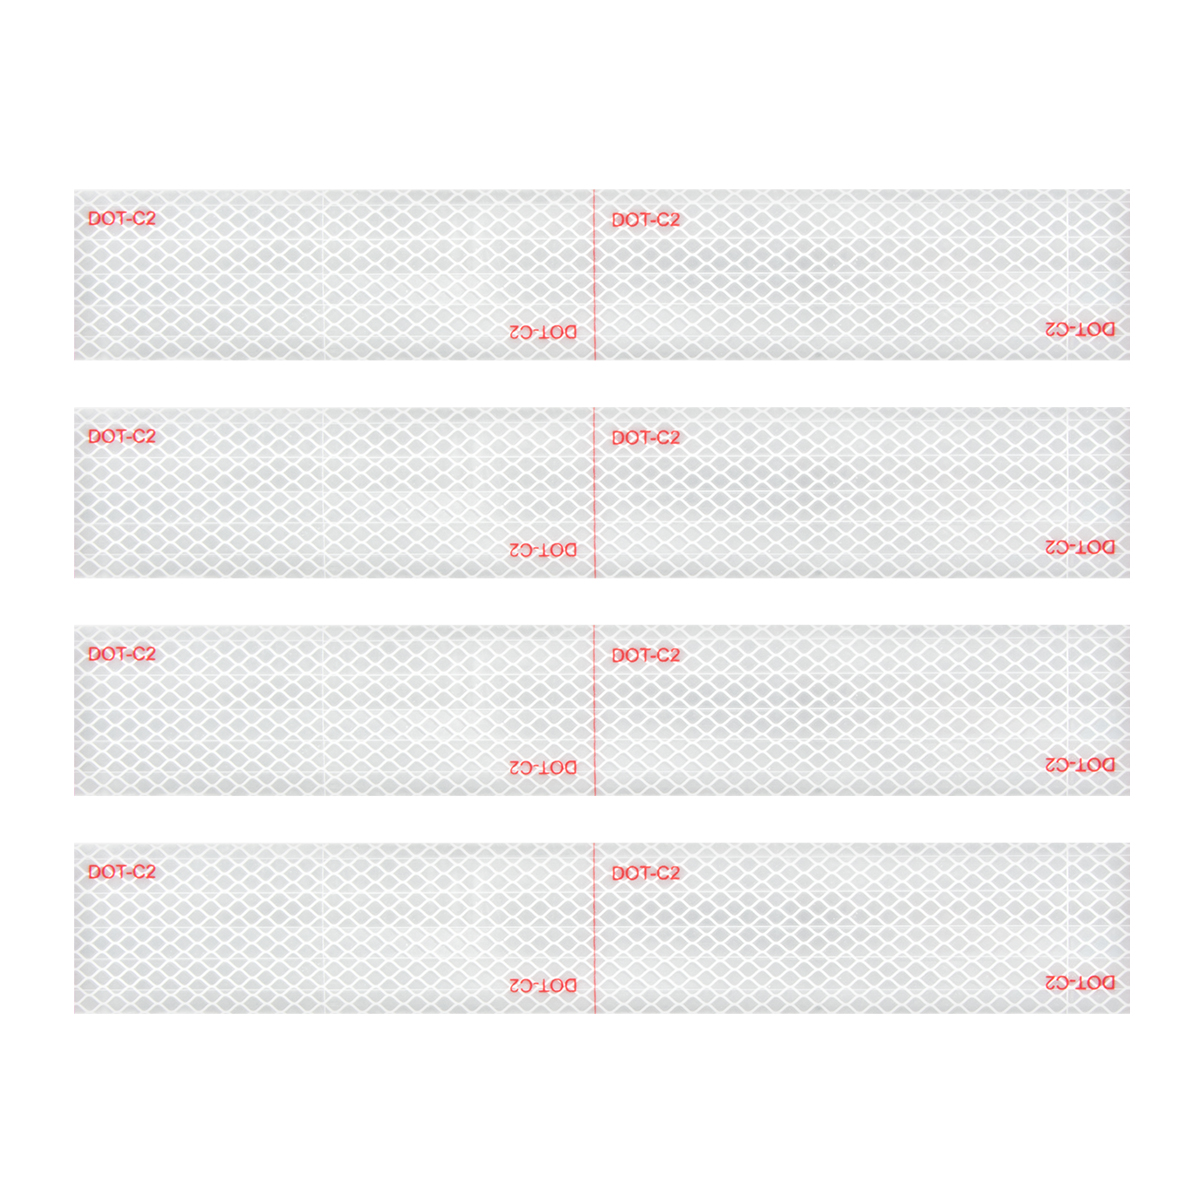 "92294 Premium Hi Viz DOT-C2 Conspicuity Tape in White 18"" Strips"